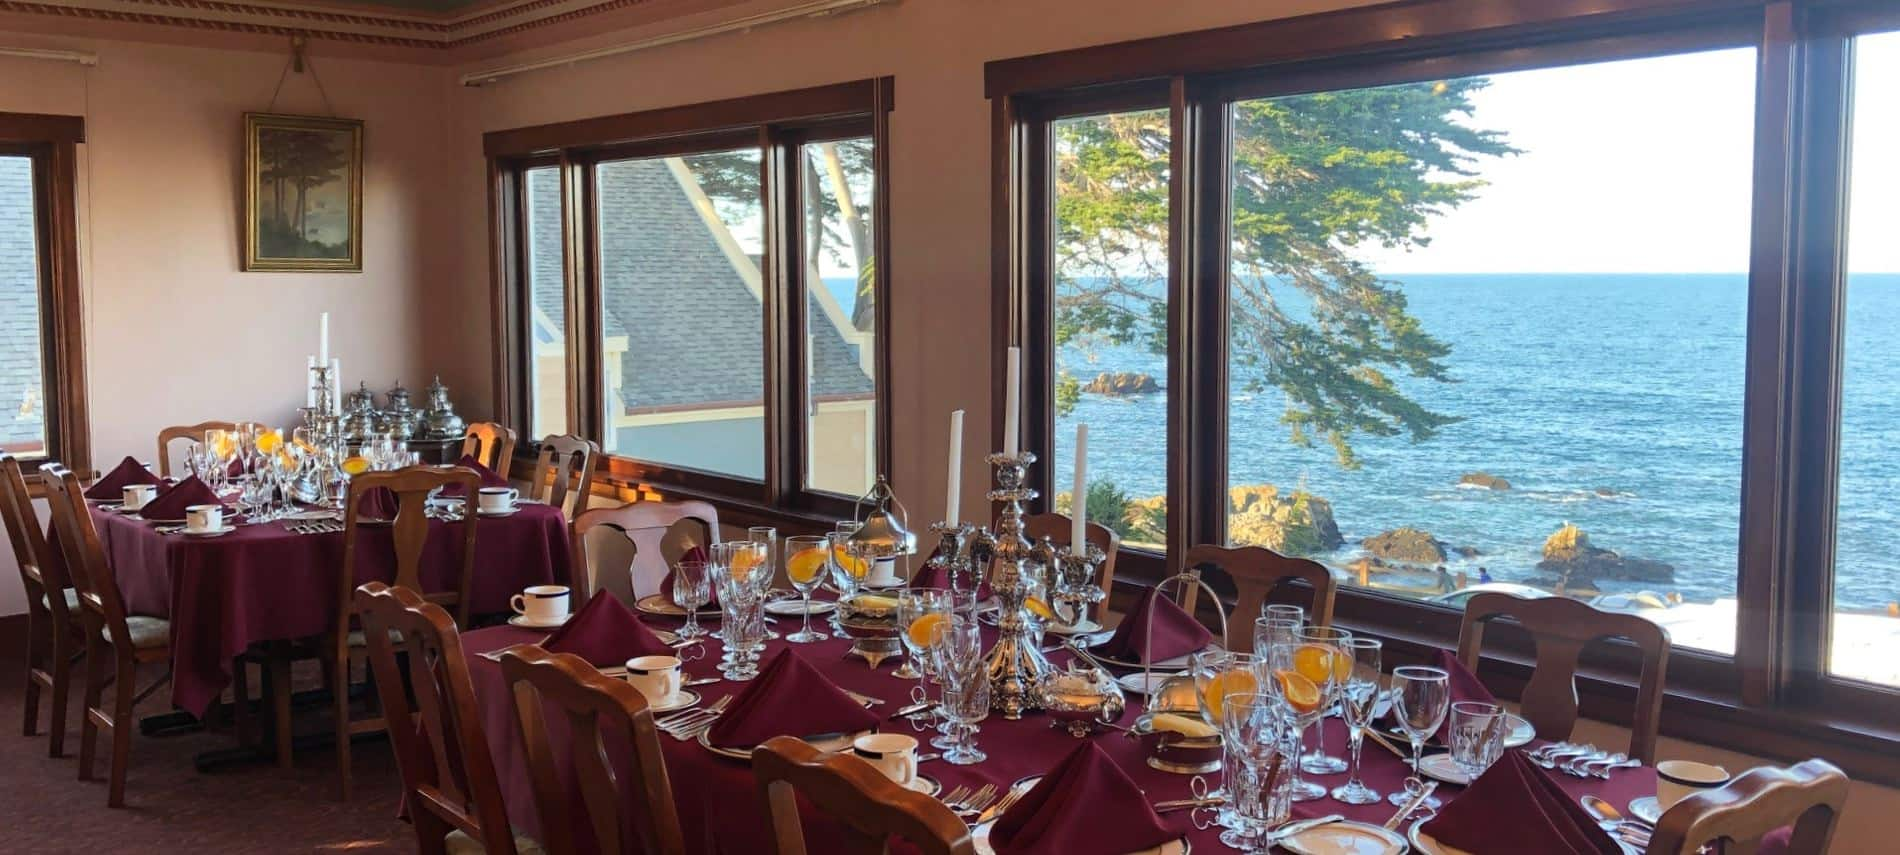 Tables set with burgundy cloths and napkins, water glasses with fresh orange slices, assorted wine glasses, overlooking Monterey Bay